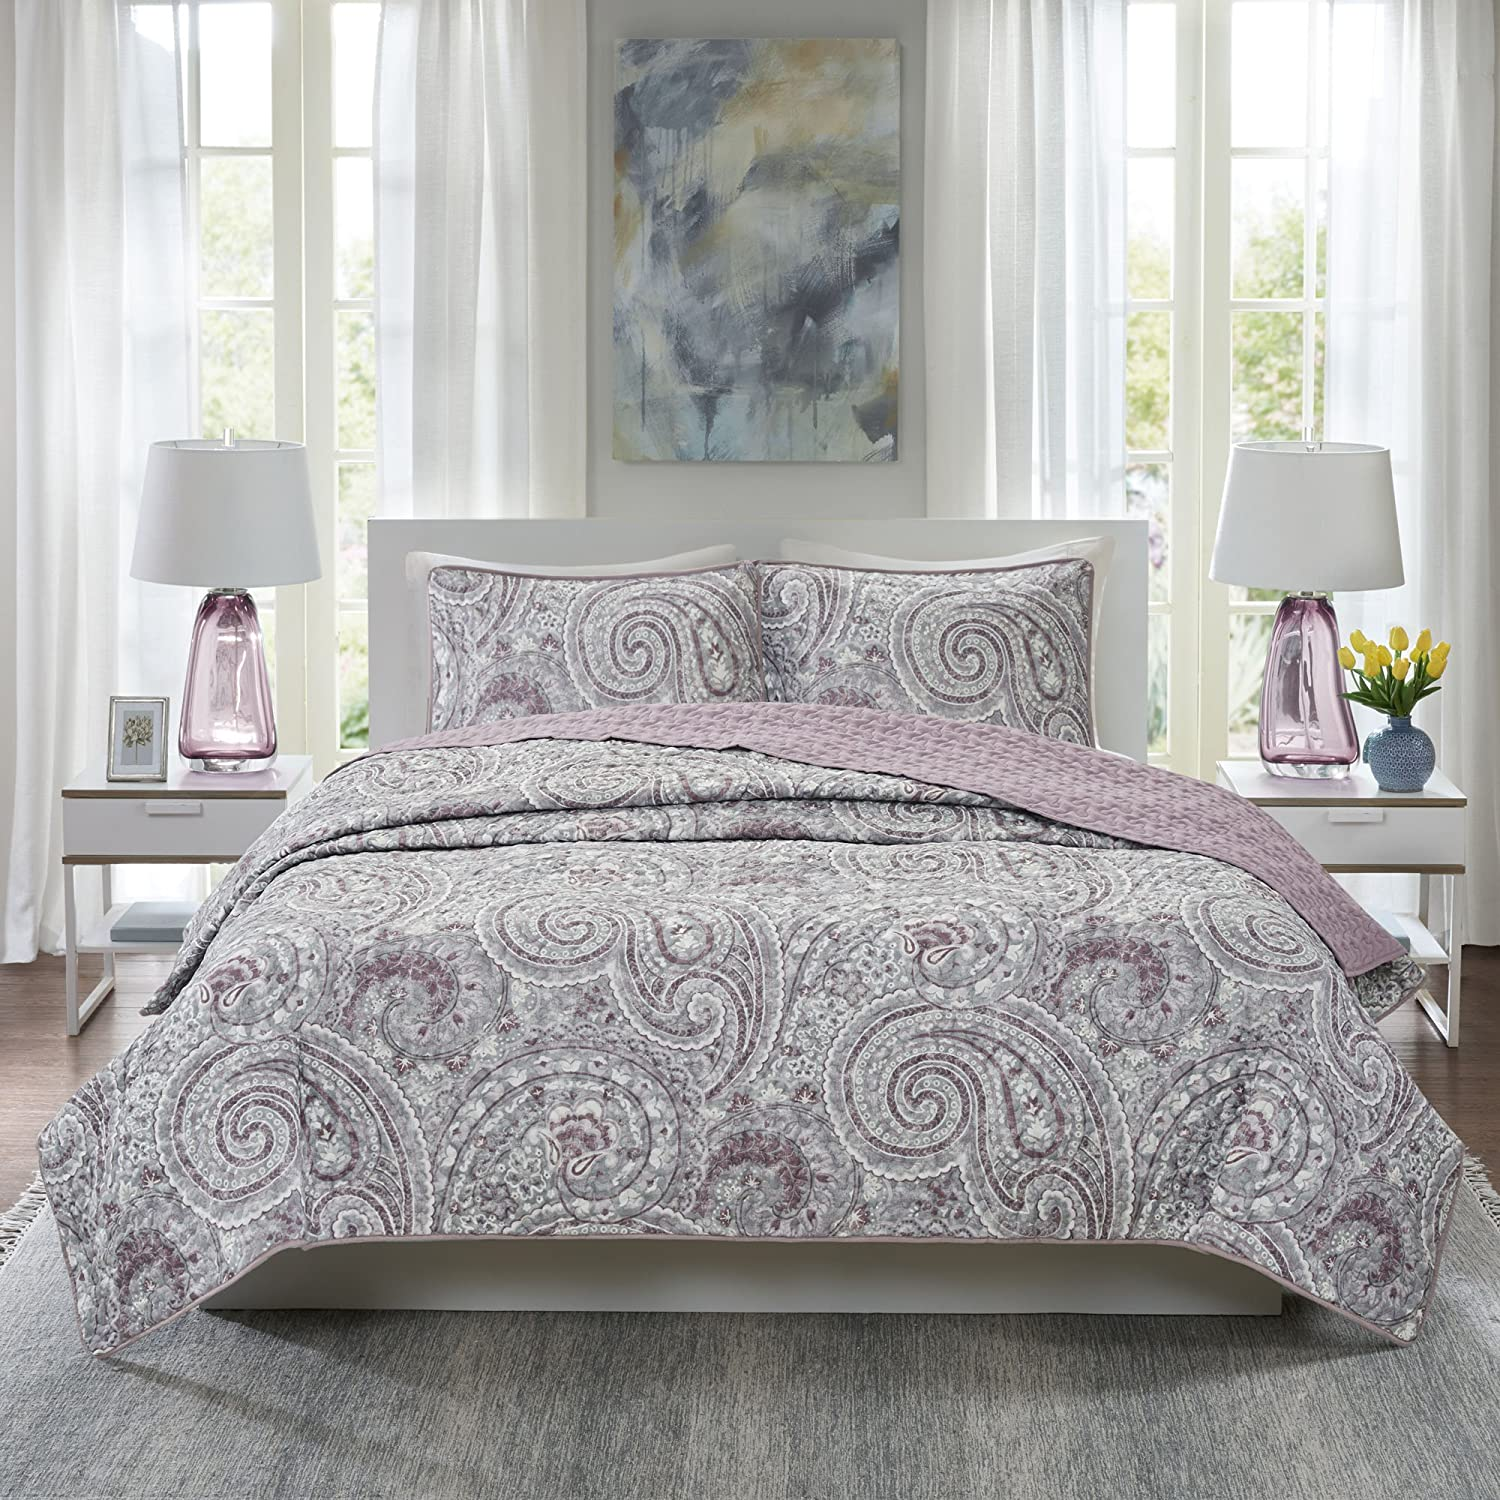 Comfort Spaces Paisley Design Double All Sided Quilting 2021 new Popular overseas Season